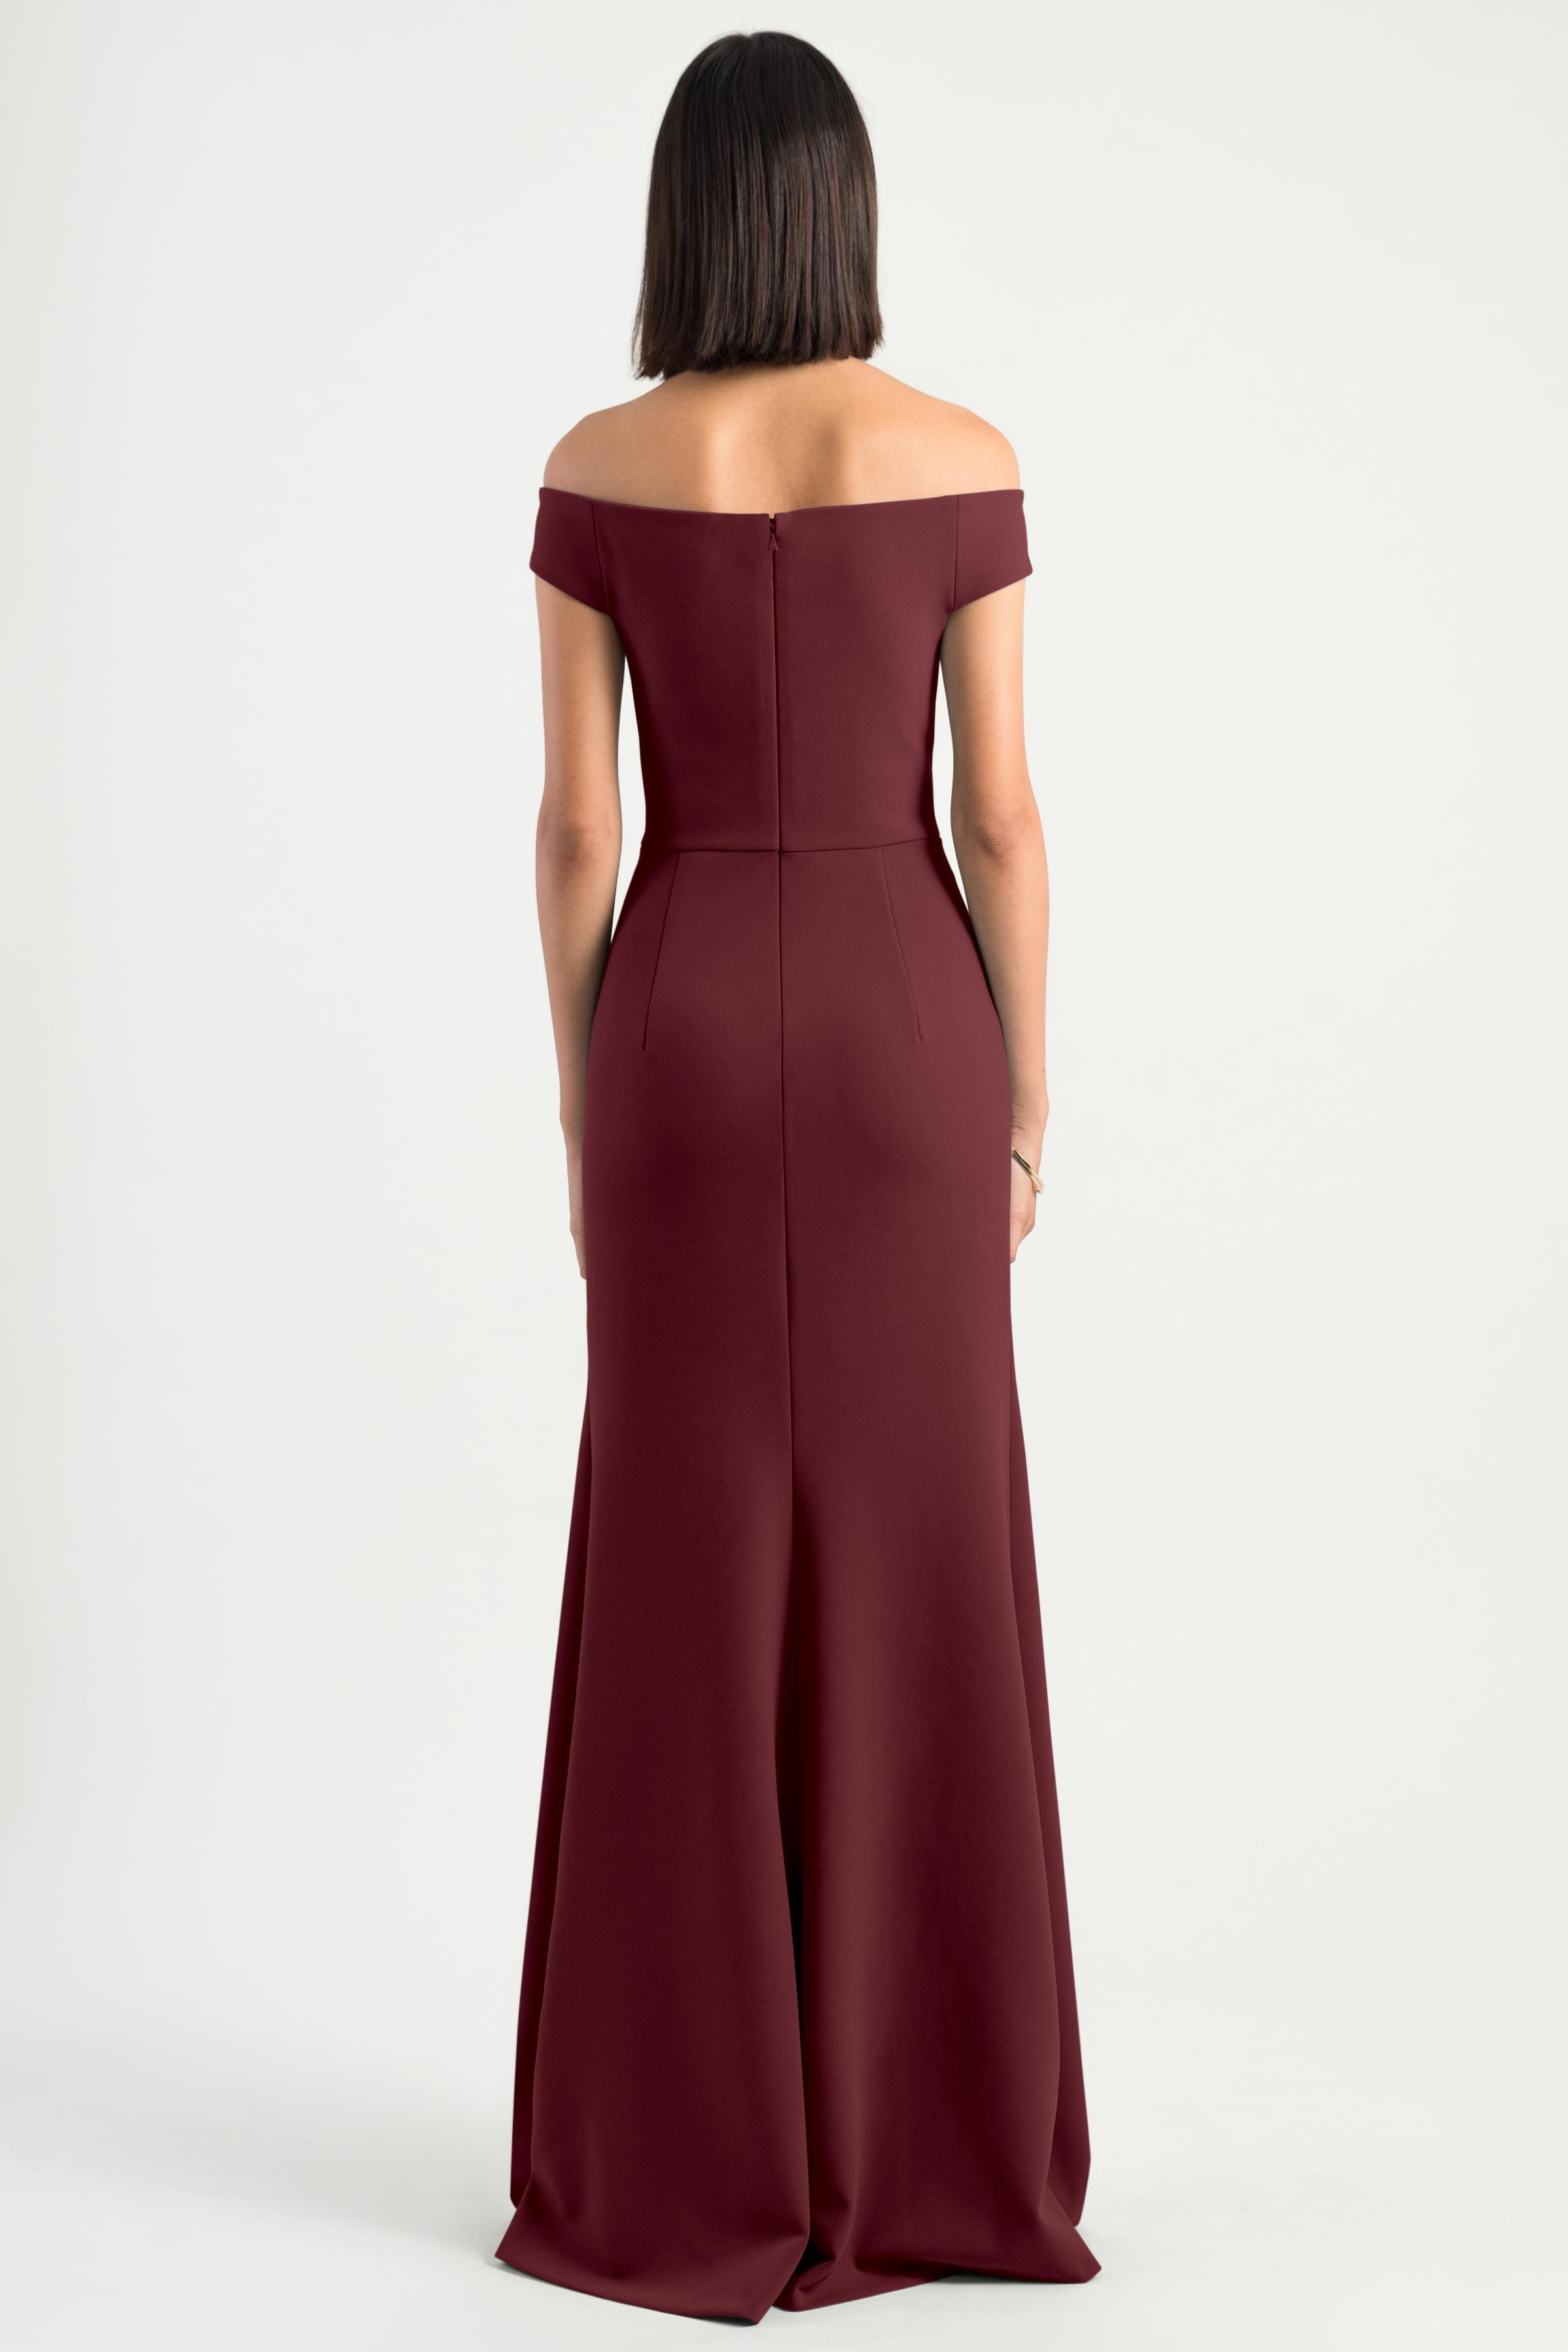 Larson Bridesmaids Dress by Jenny Yoo - Hibiscus